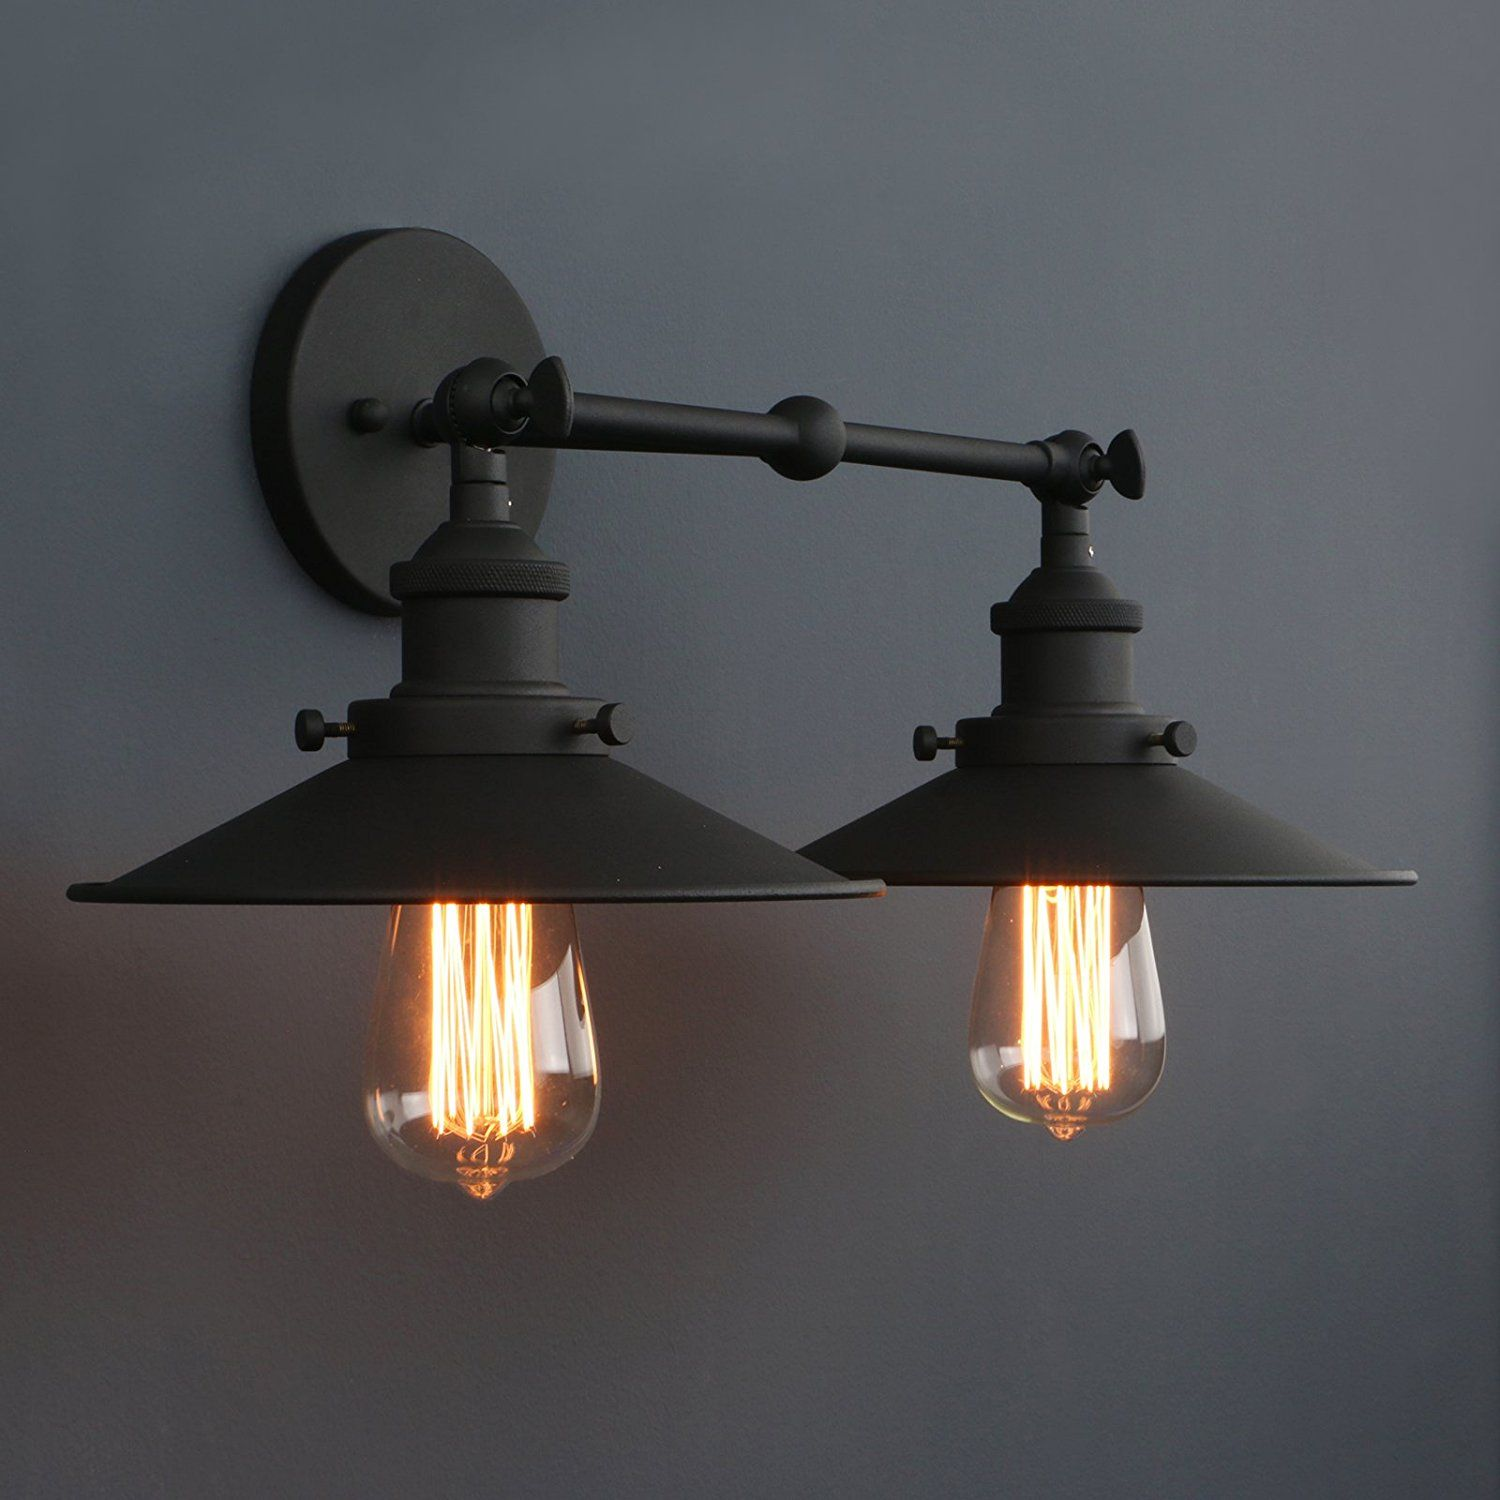 d19333d4e894d Phansthy Vintage Industrial 2-Light Wall Sconce 8.7 Inch Flared ...